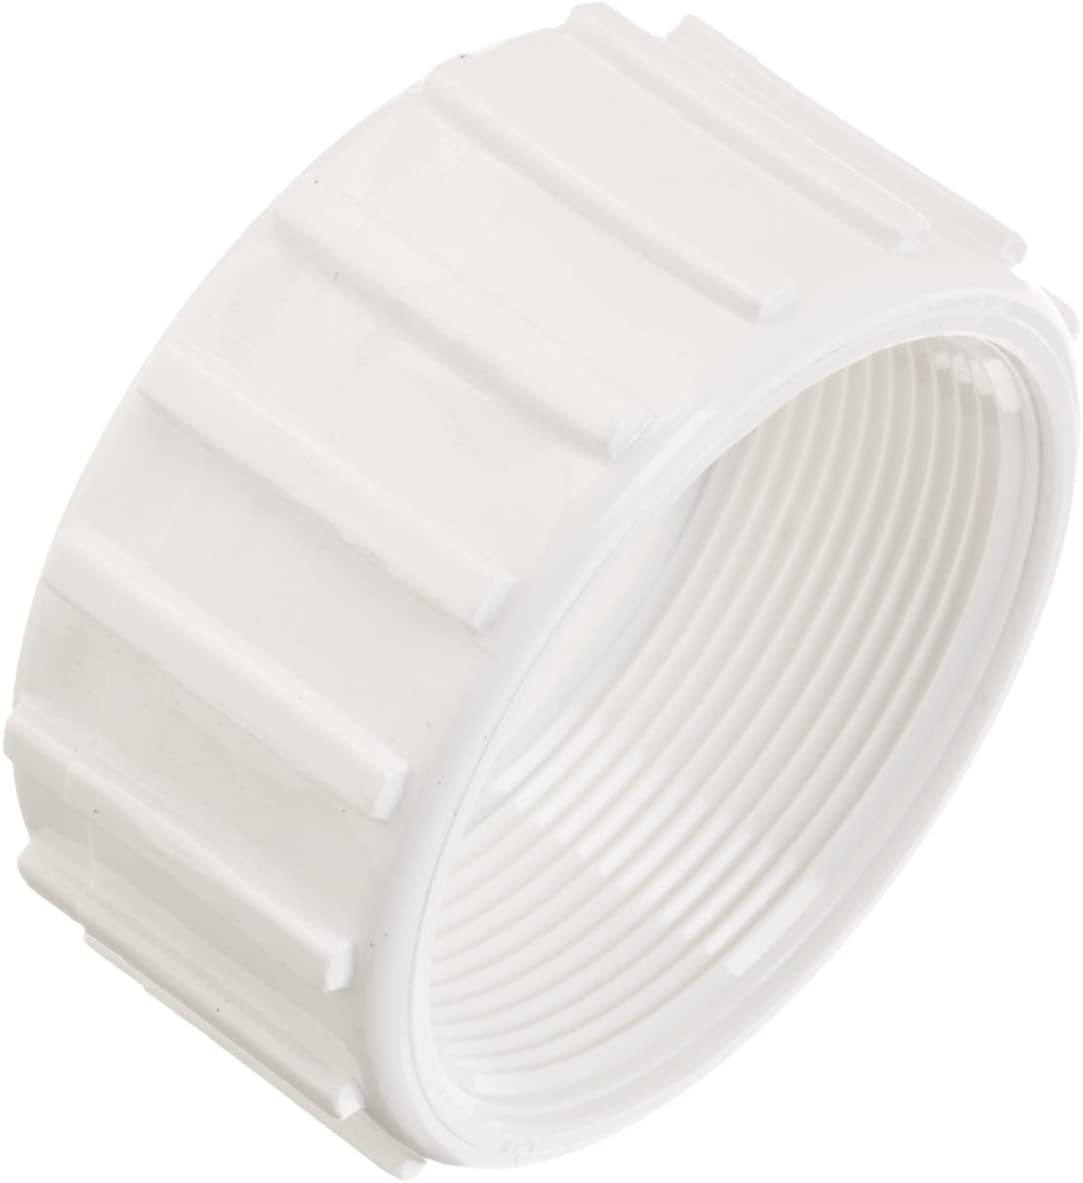 Max 1 year warranty 54% OFF Pentair U11-182PM Collar Union Replacement for Select P Sta-Rite